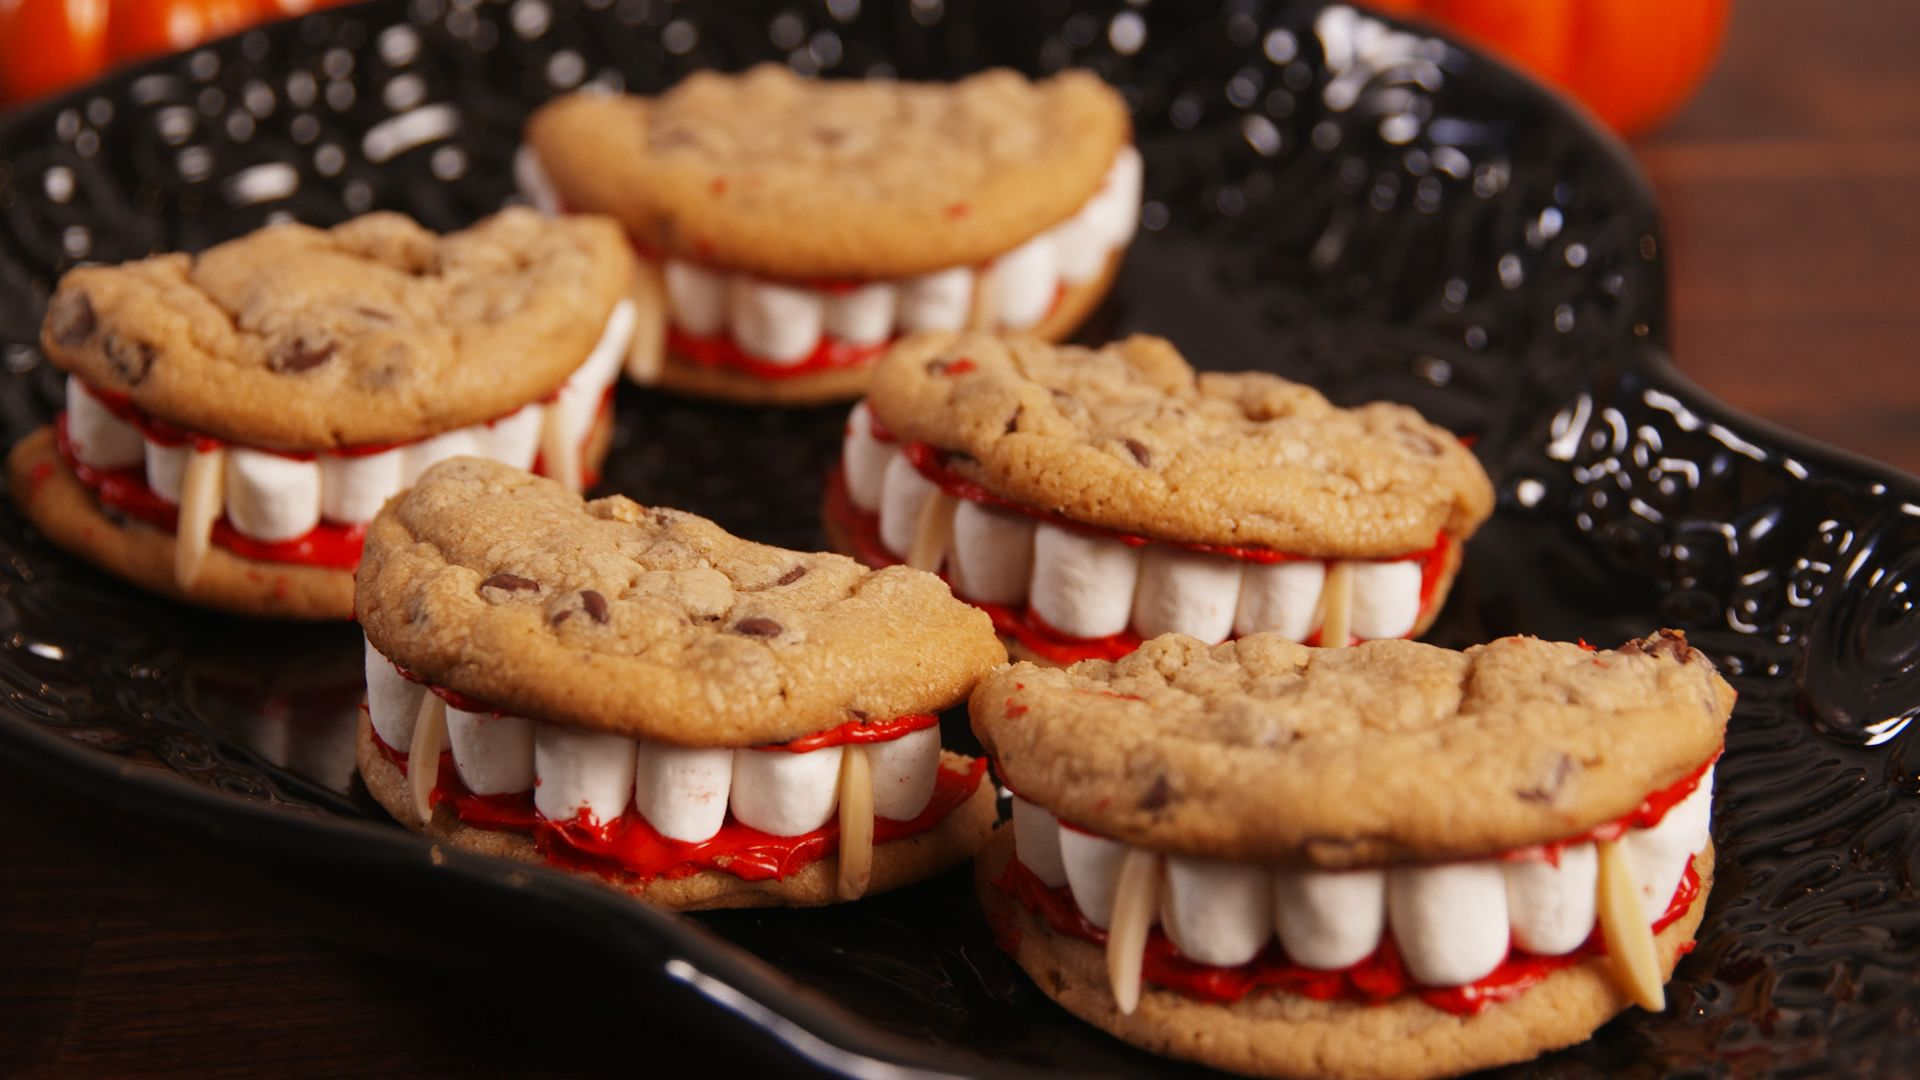 Creepiest Food Party Decoration Ideas of Halloween